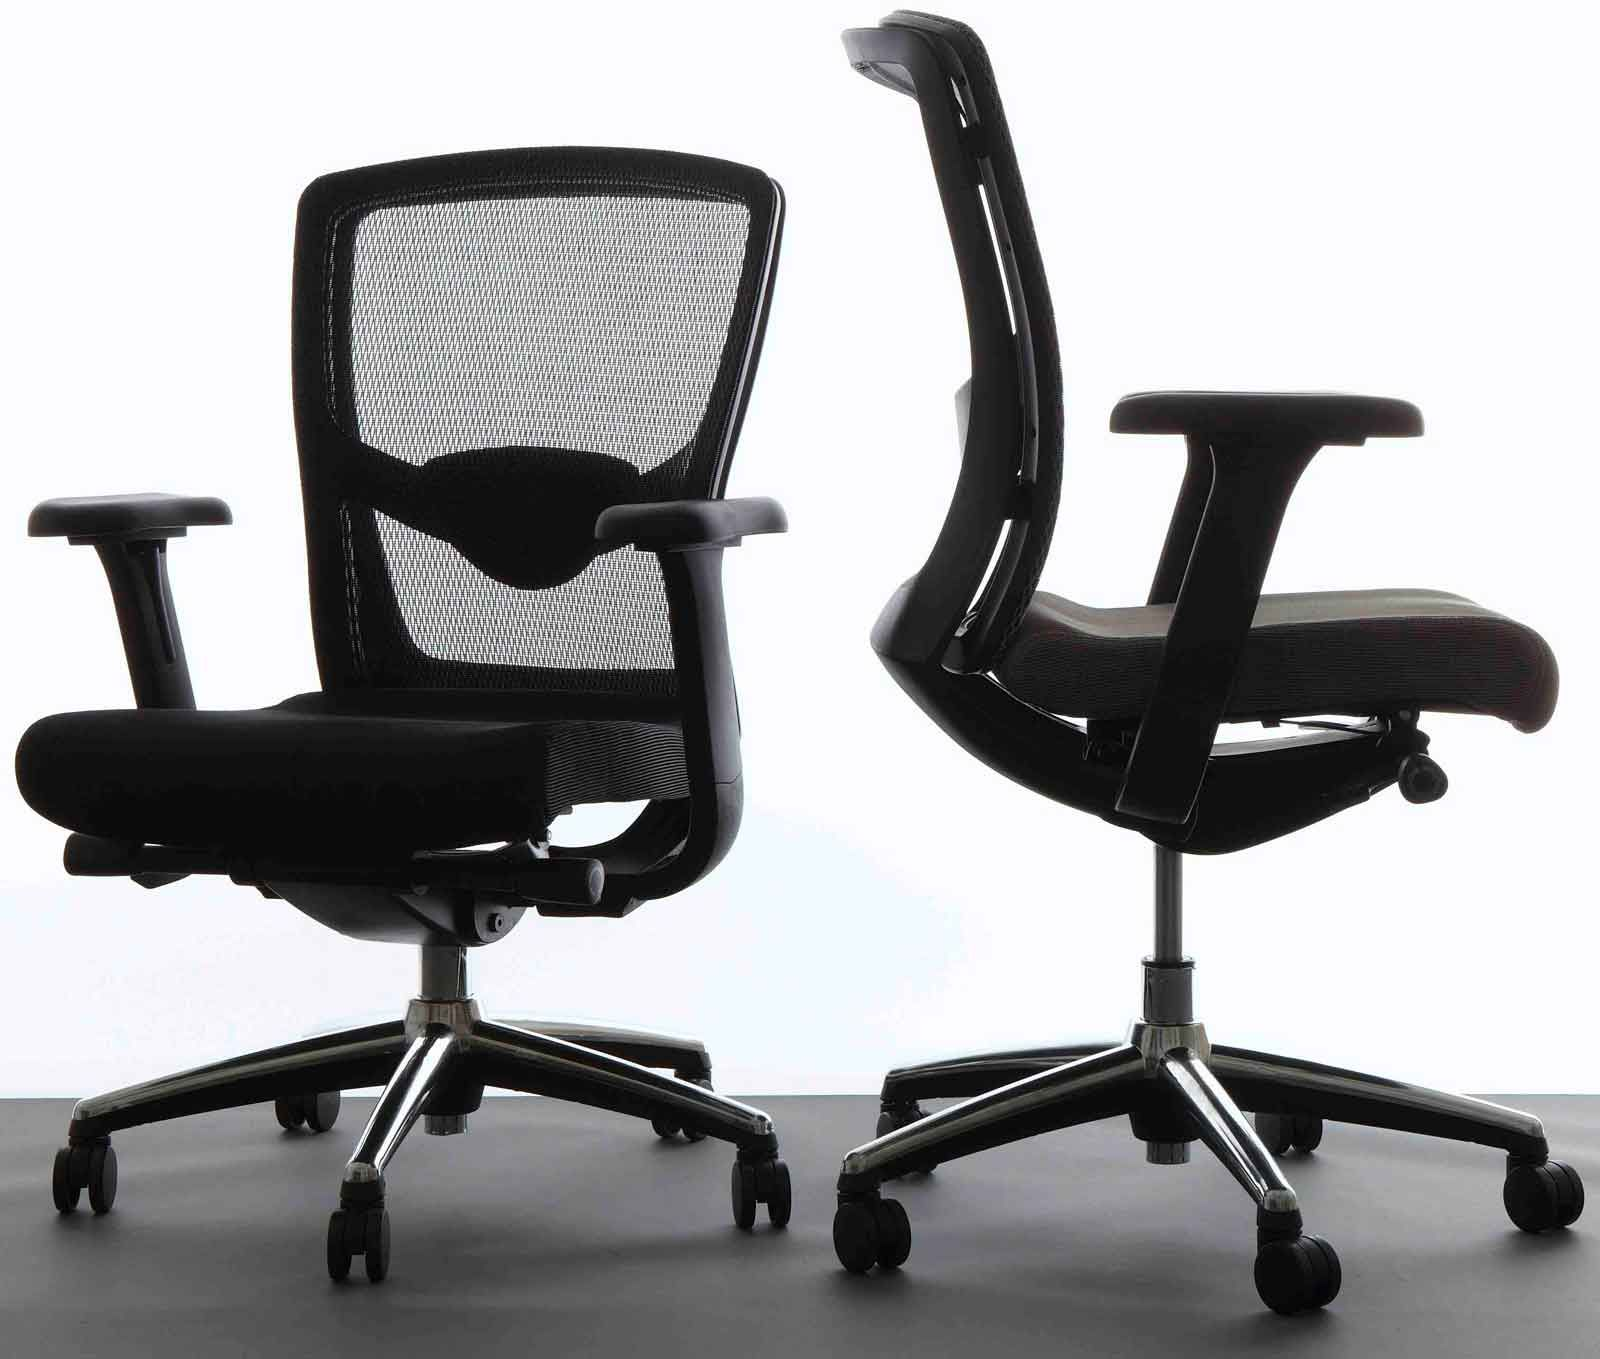 Marvelous Ergonomic Desk Chairs With Black Color And Set